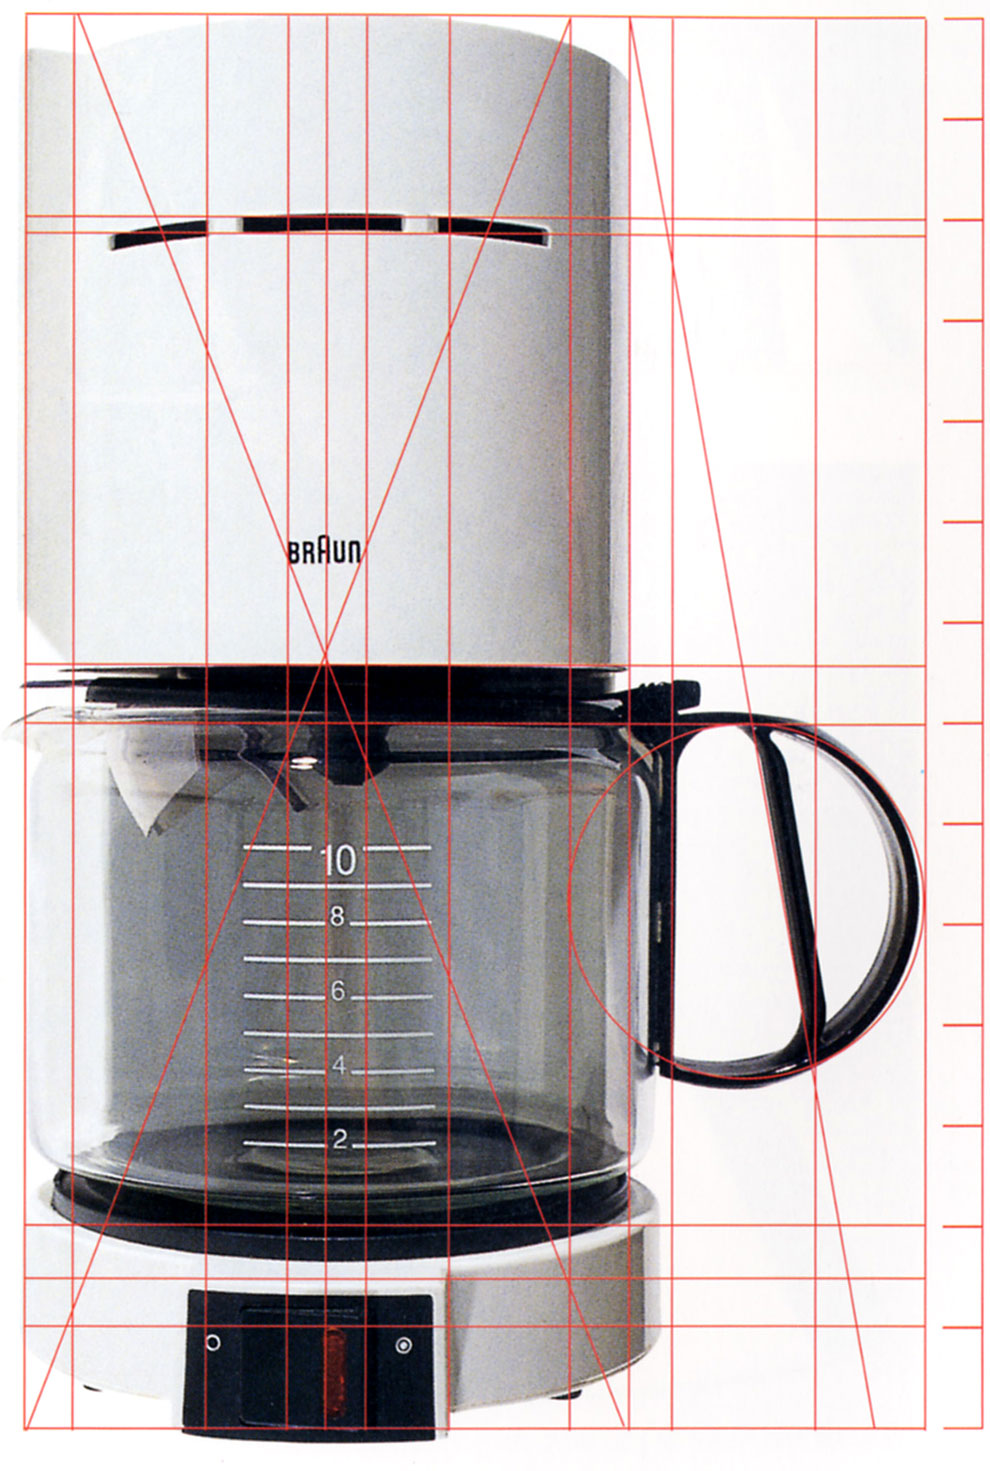 braun coffee maker, from geomertry of design by kimberly elam, page 95